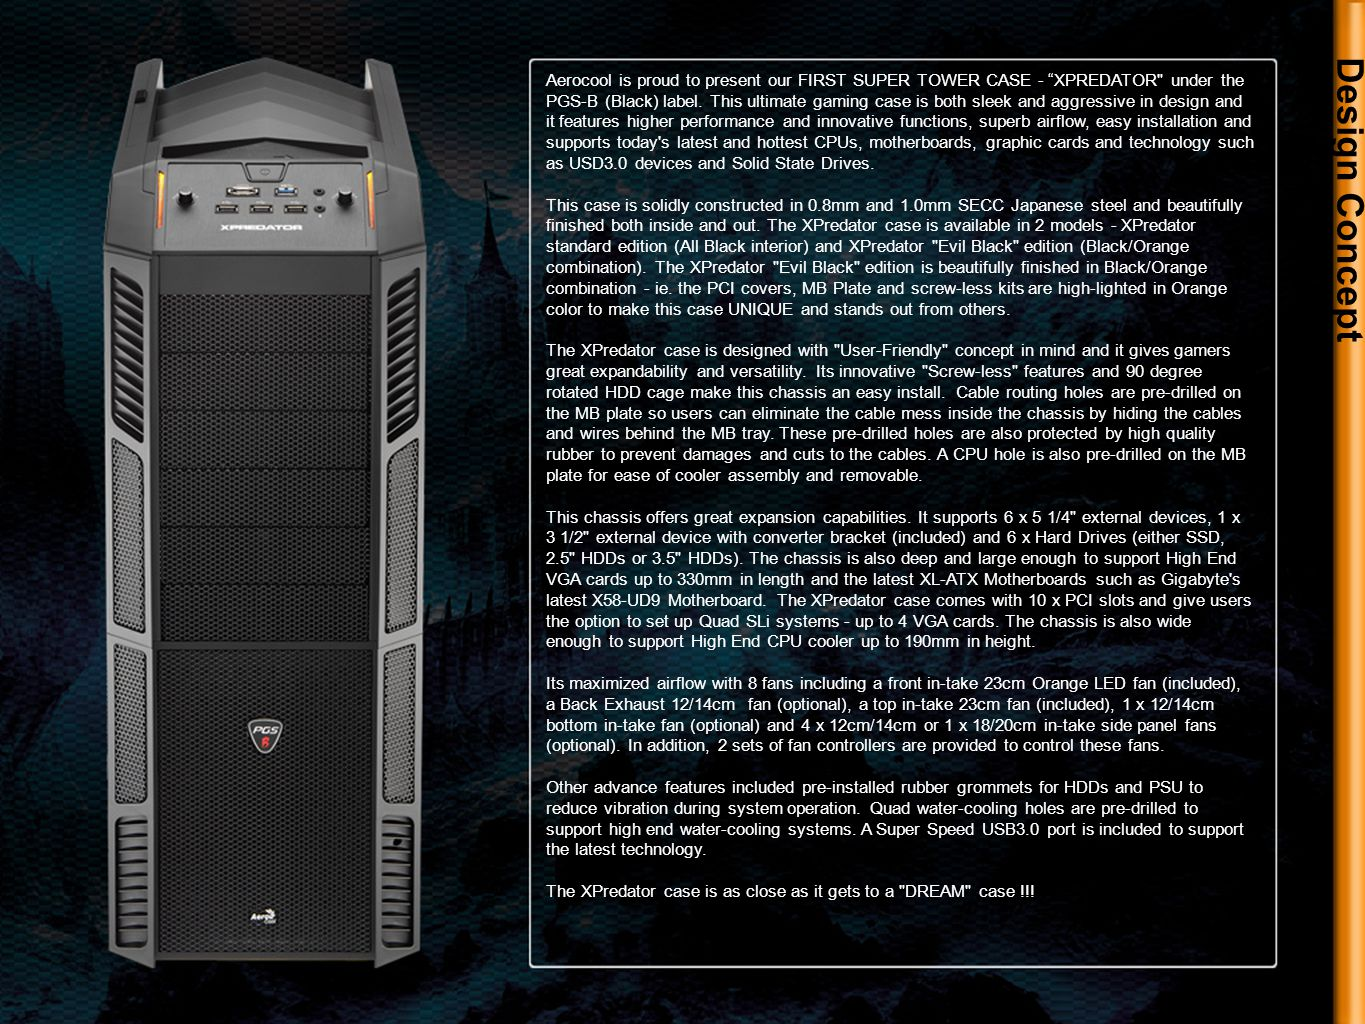 Design Concept Aerocool is proud to present our FIRST SUPER TOWER CASE - XPREDATOR under the PGS-B (Black) label.